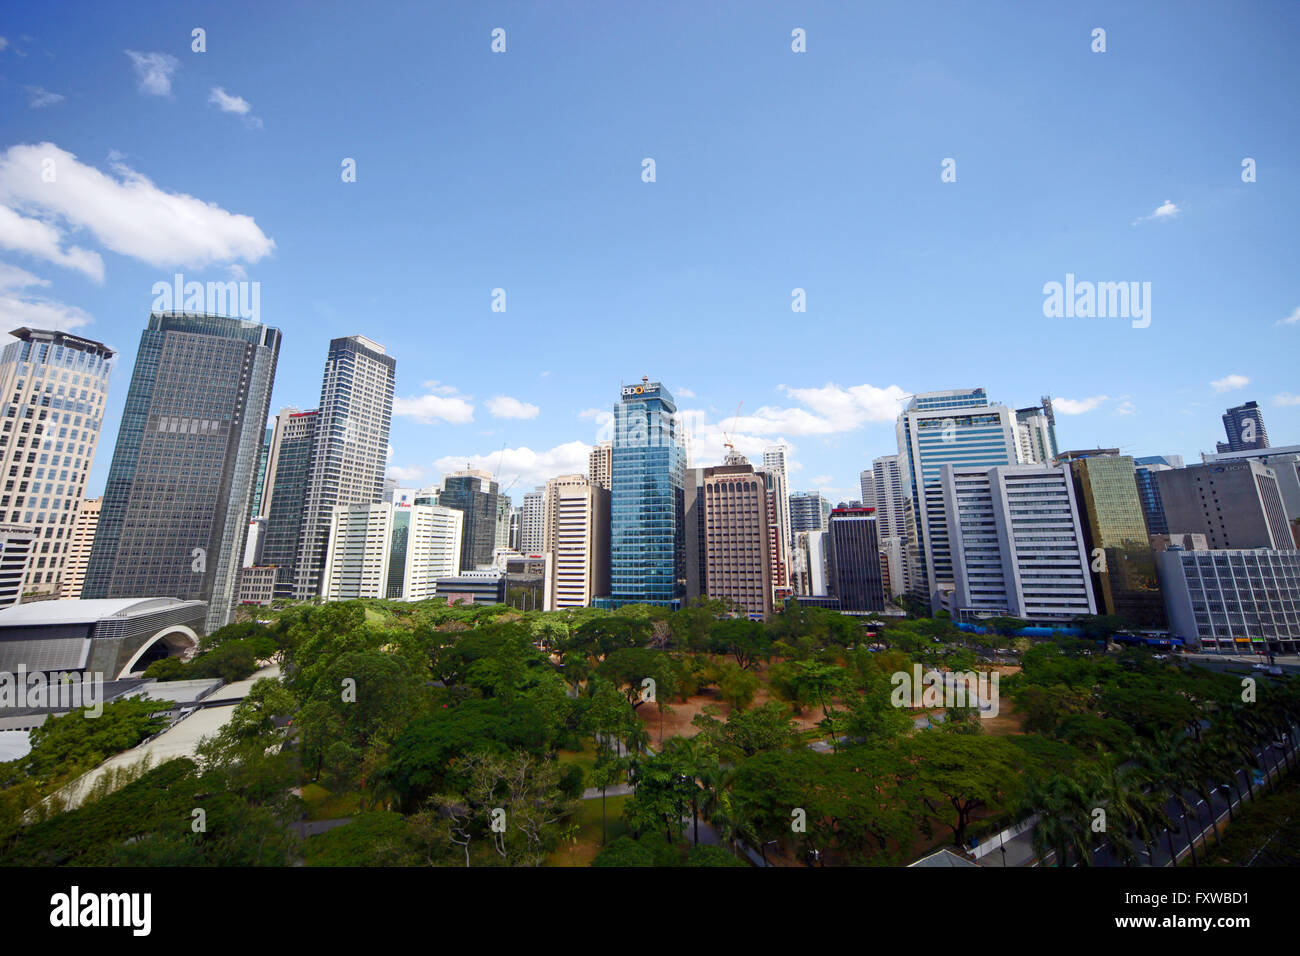 TALL BUILDINGS FROM PENINSULA HOTEL MANILA PHILIPPINES ASIA 18 April 2015 - Stock Image